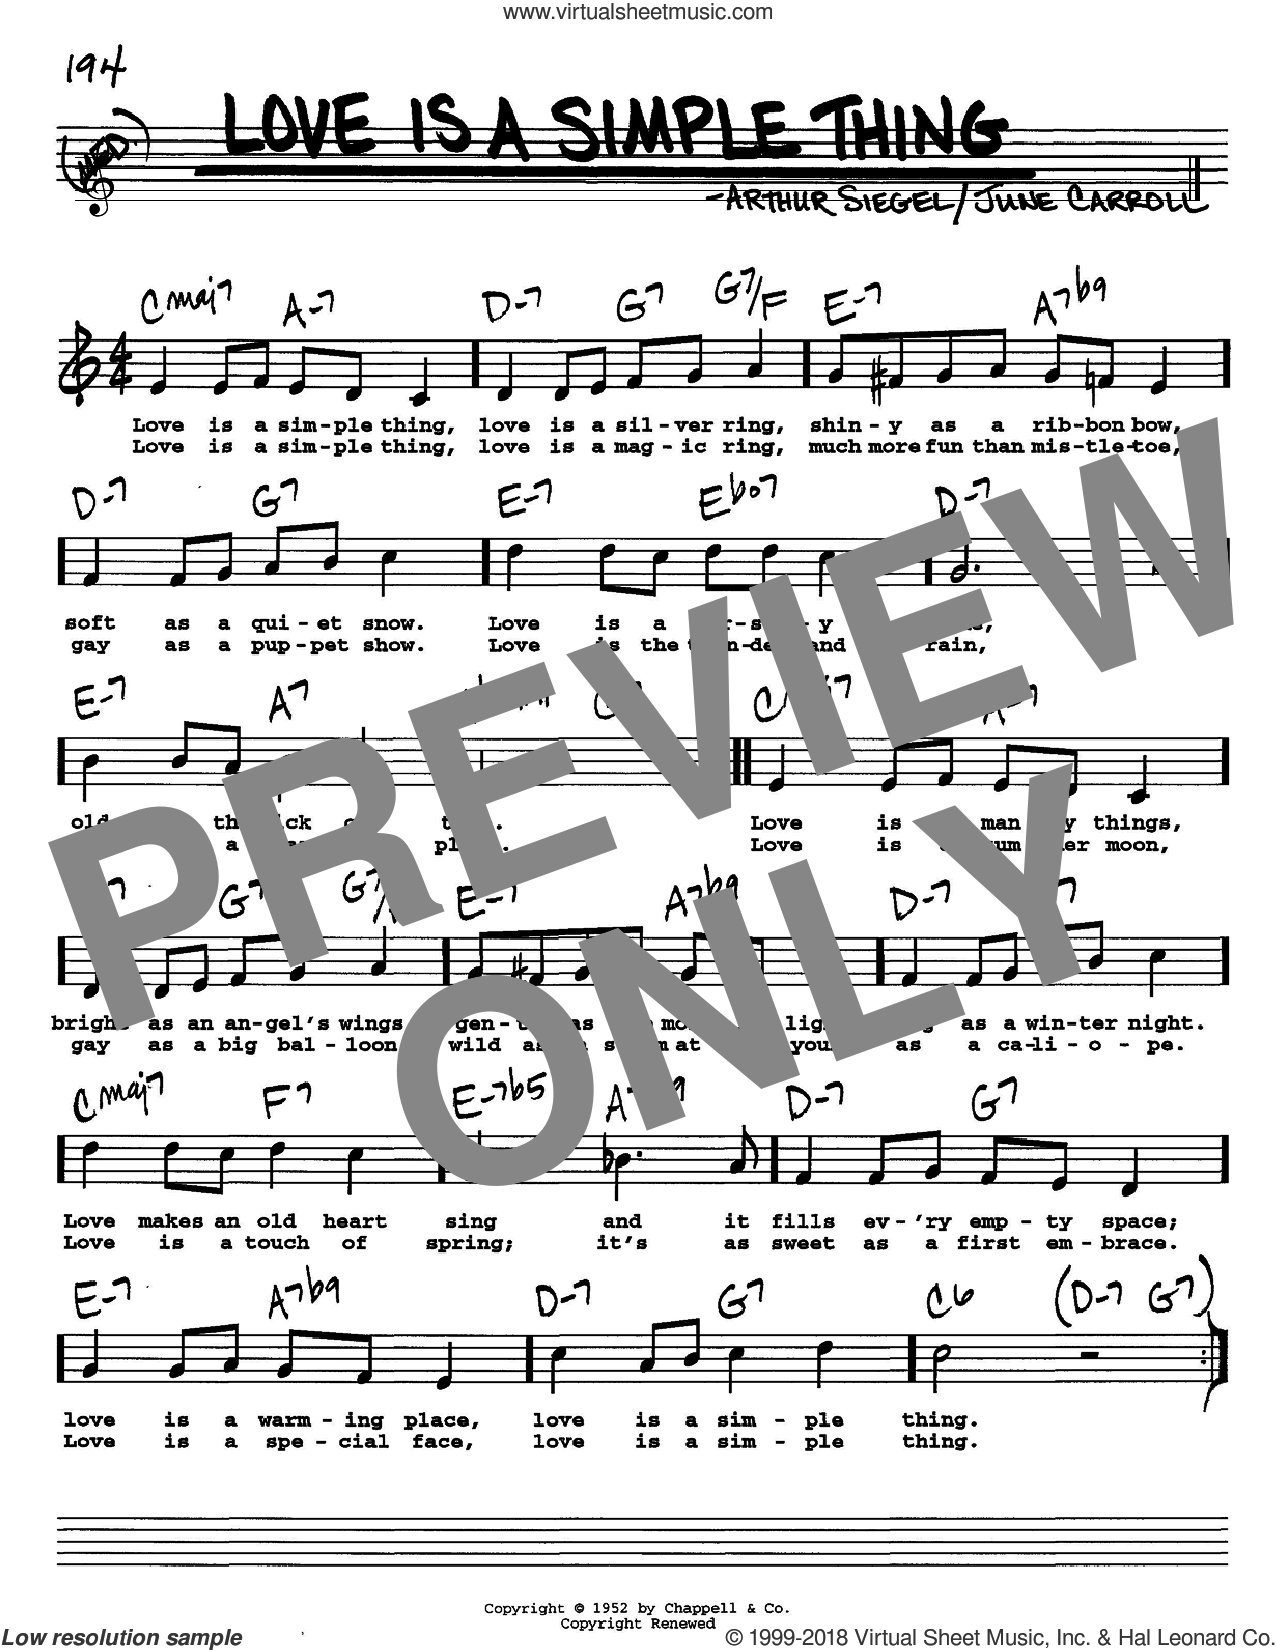 Love Is A Simple Thing sheet music for voice and other instruments (Vocal Volume 2) by Arthur Siegel and June Carroll